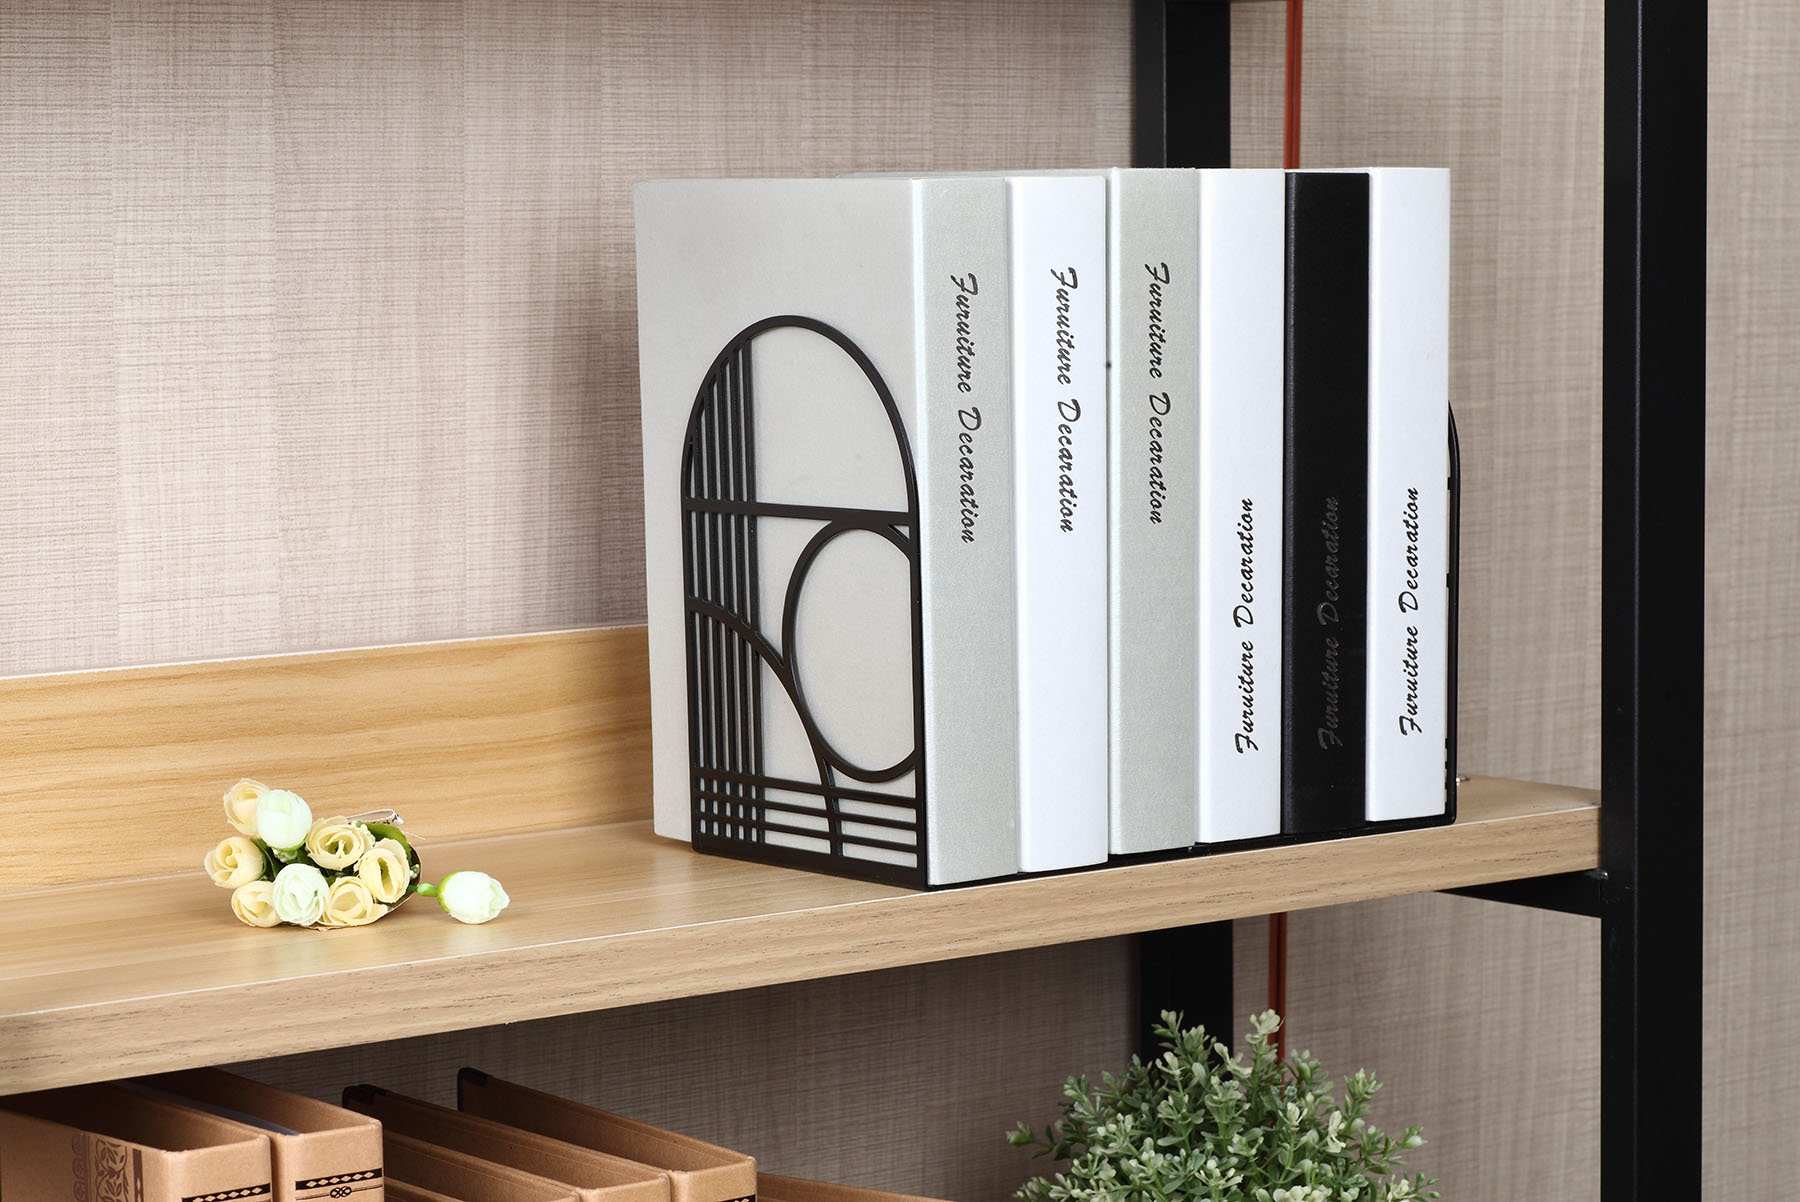 2 Packs Unique Office Bookends - Modern Brand Design Metal Book Ends for Large and Tall Books (Black Two Pairs) by NEUN WELTEN (Image #3)